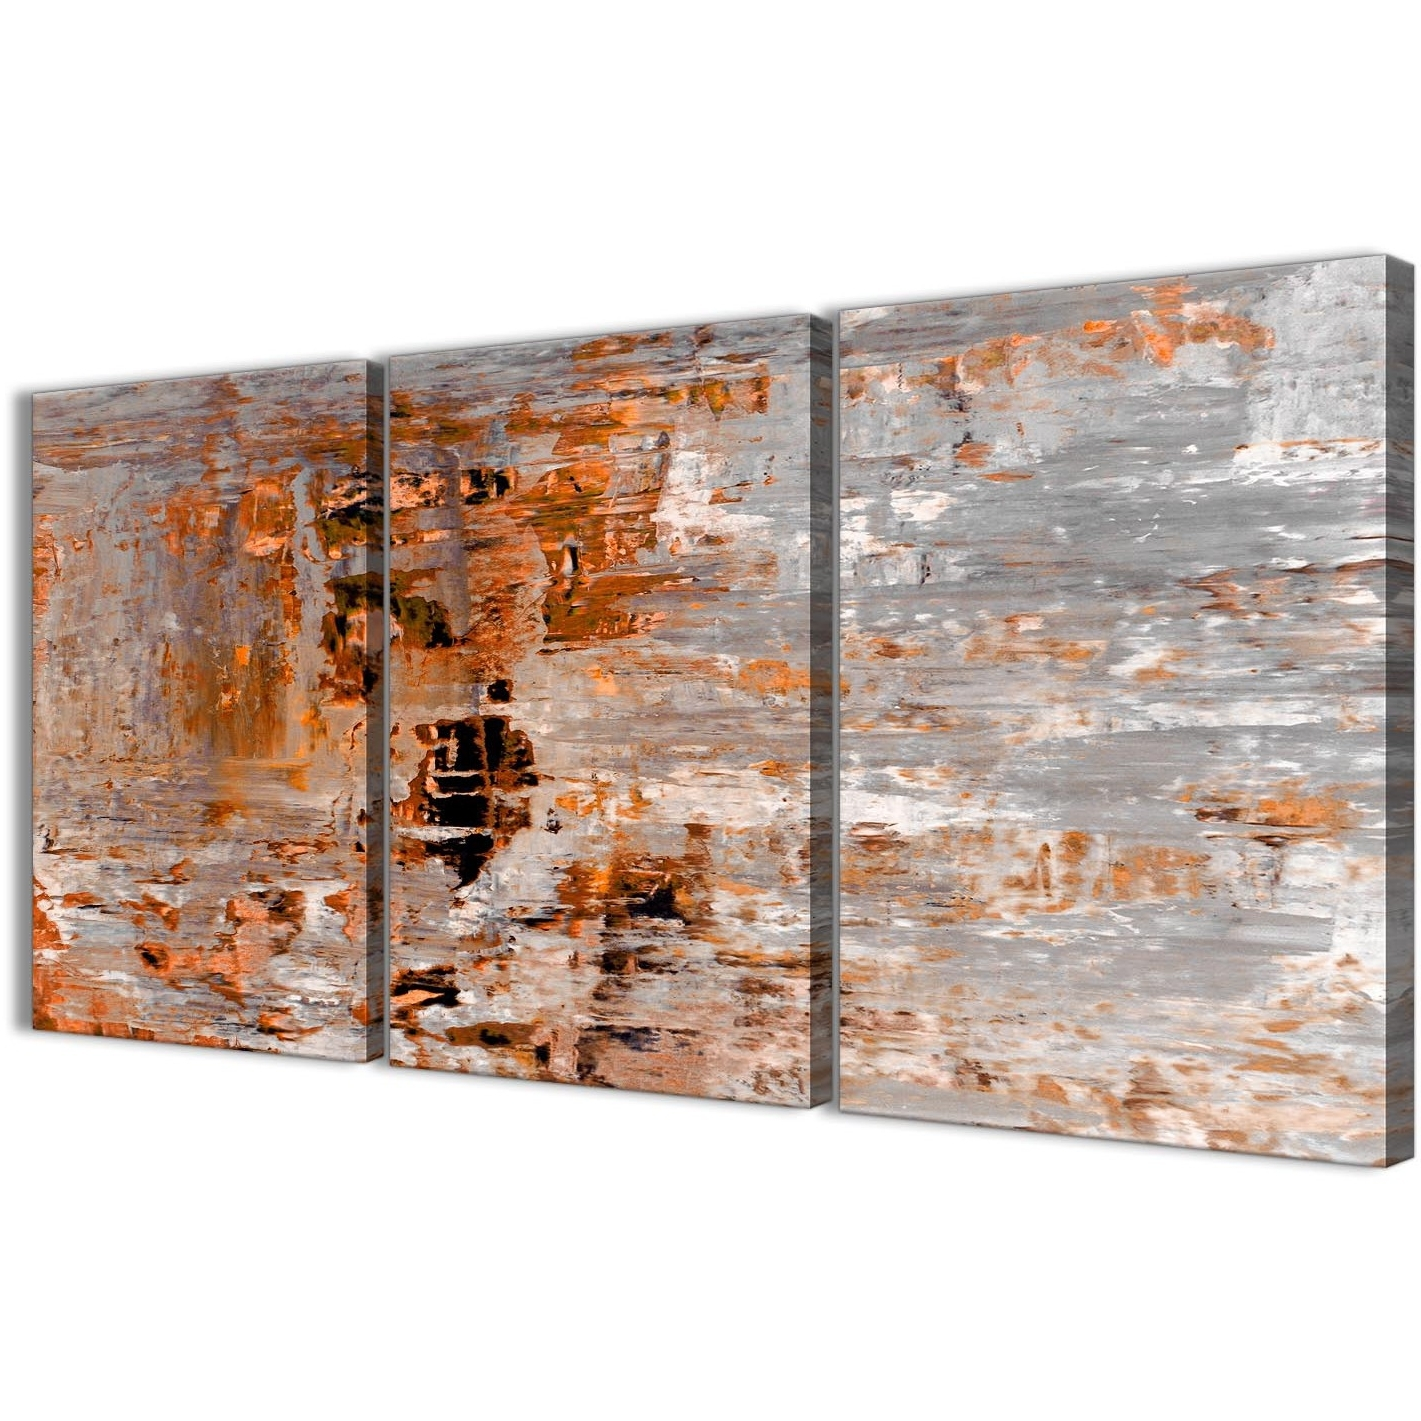 Orange Wall Art Inside Most Recently Released 3 Panel Burnt Orange Grey Painting Dining Room Canvas Wall Art Decor (View 12 of 15)